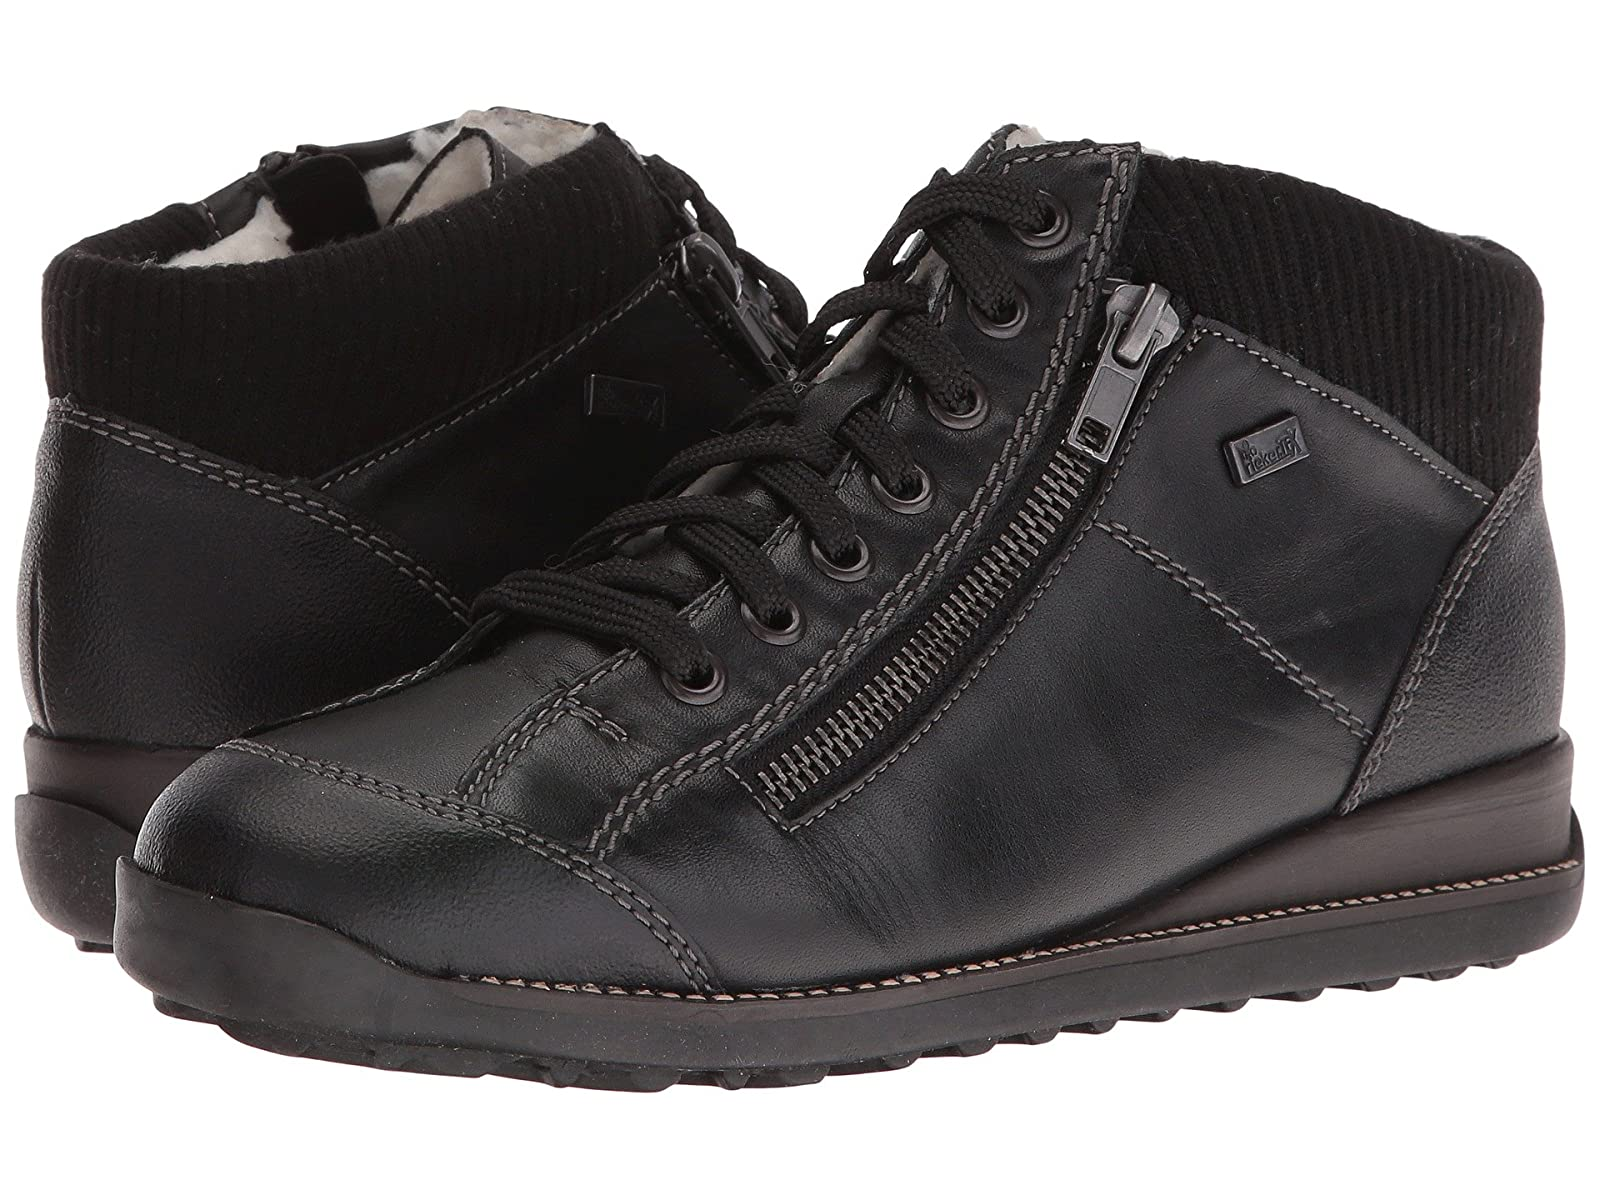 Rieker 44241Cheap and distinctive eye-catching shoes